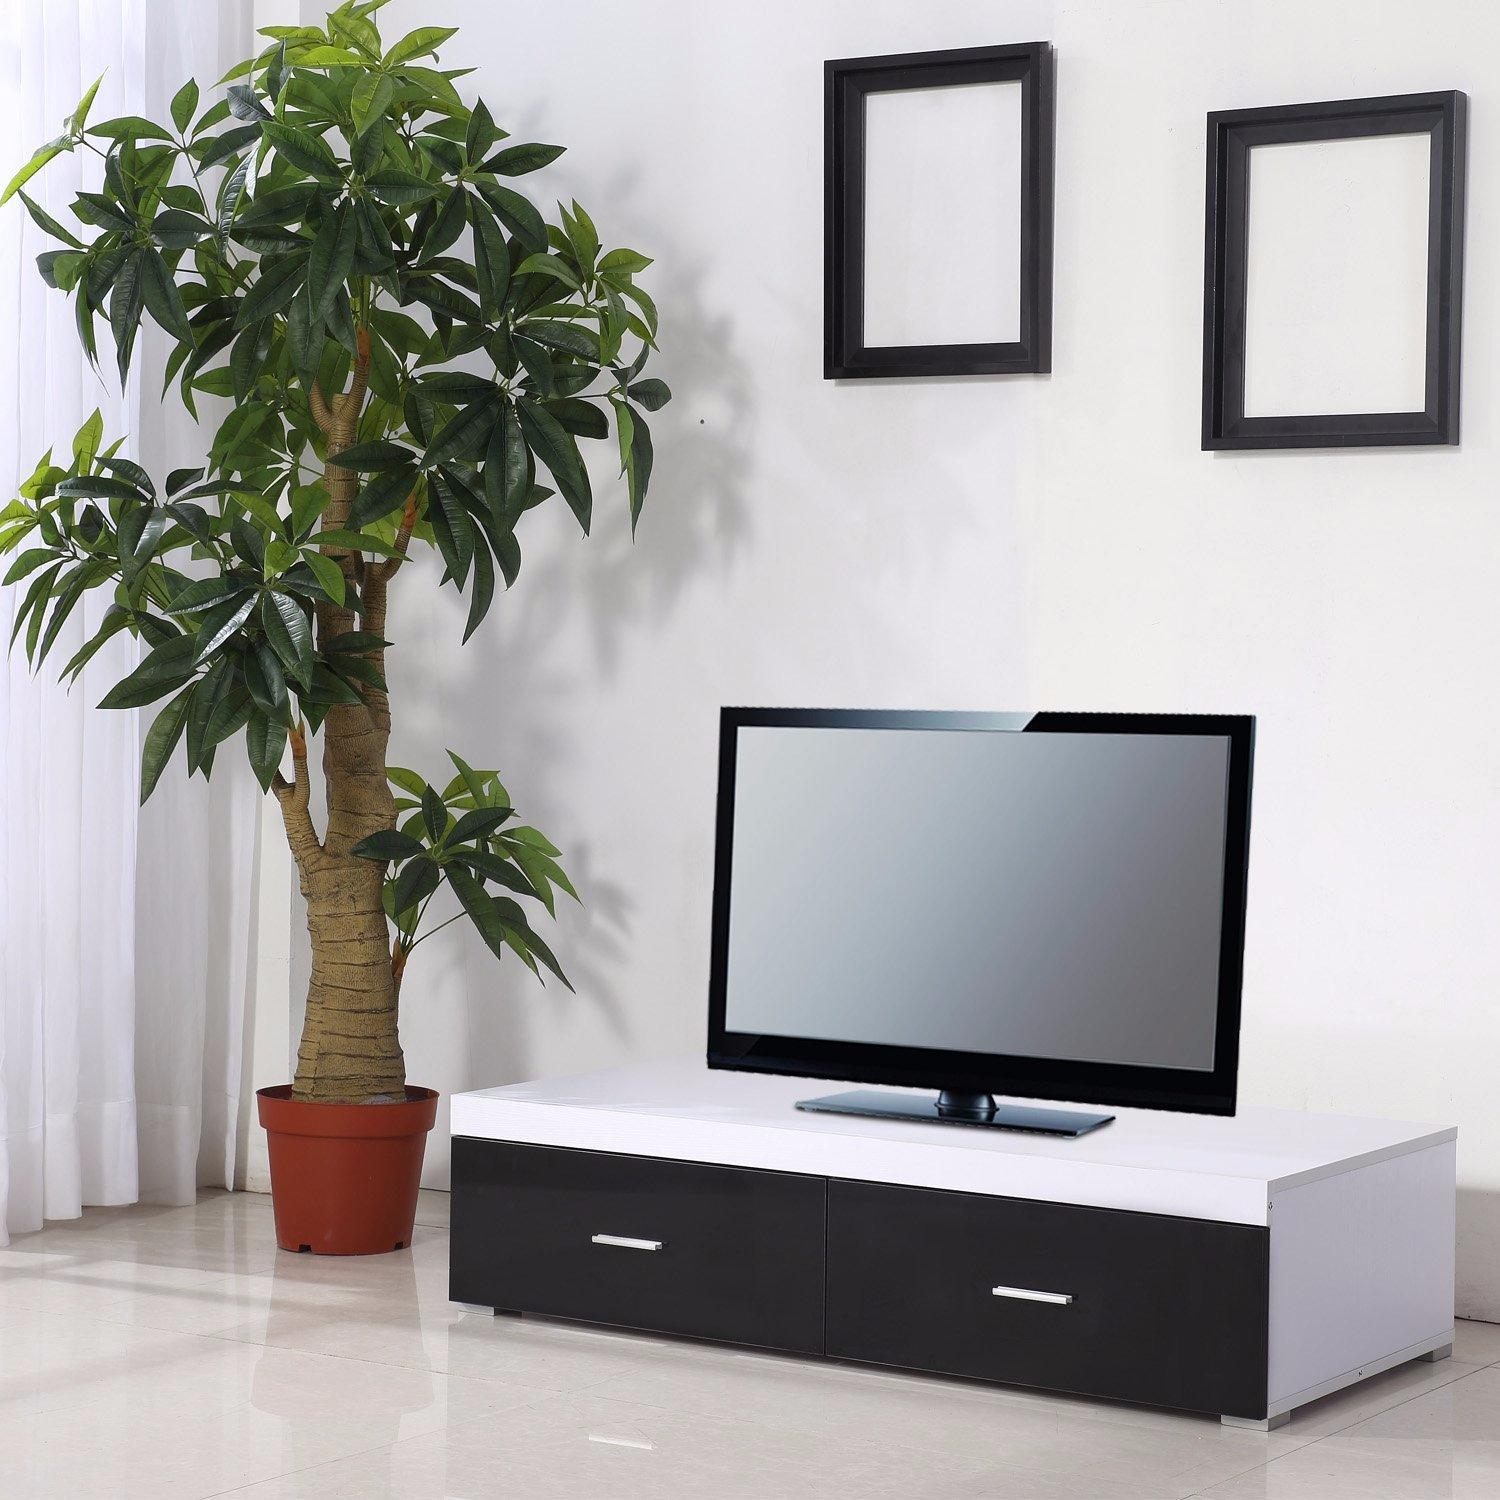 meuble tv moderne ciel et terre. Black Bedroom Furniture Sets. Home Design Ideas